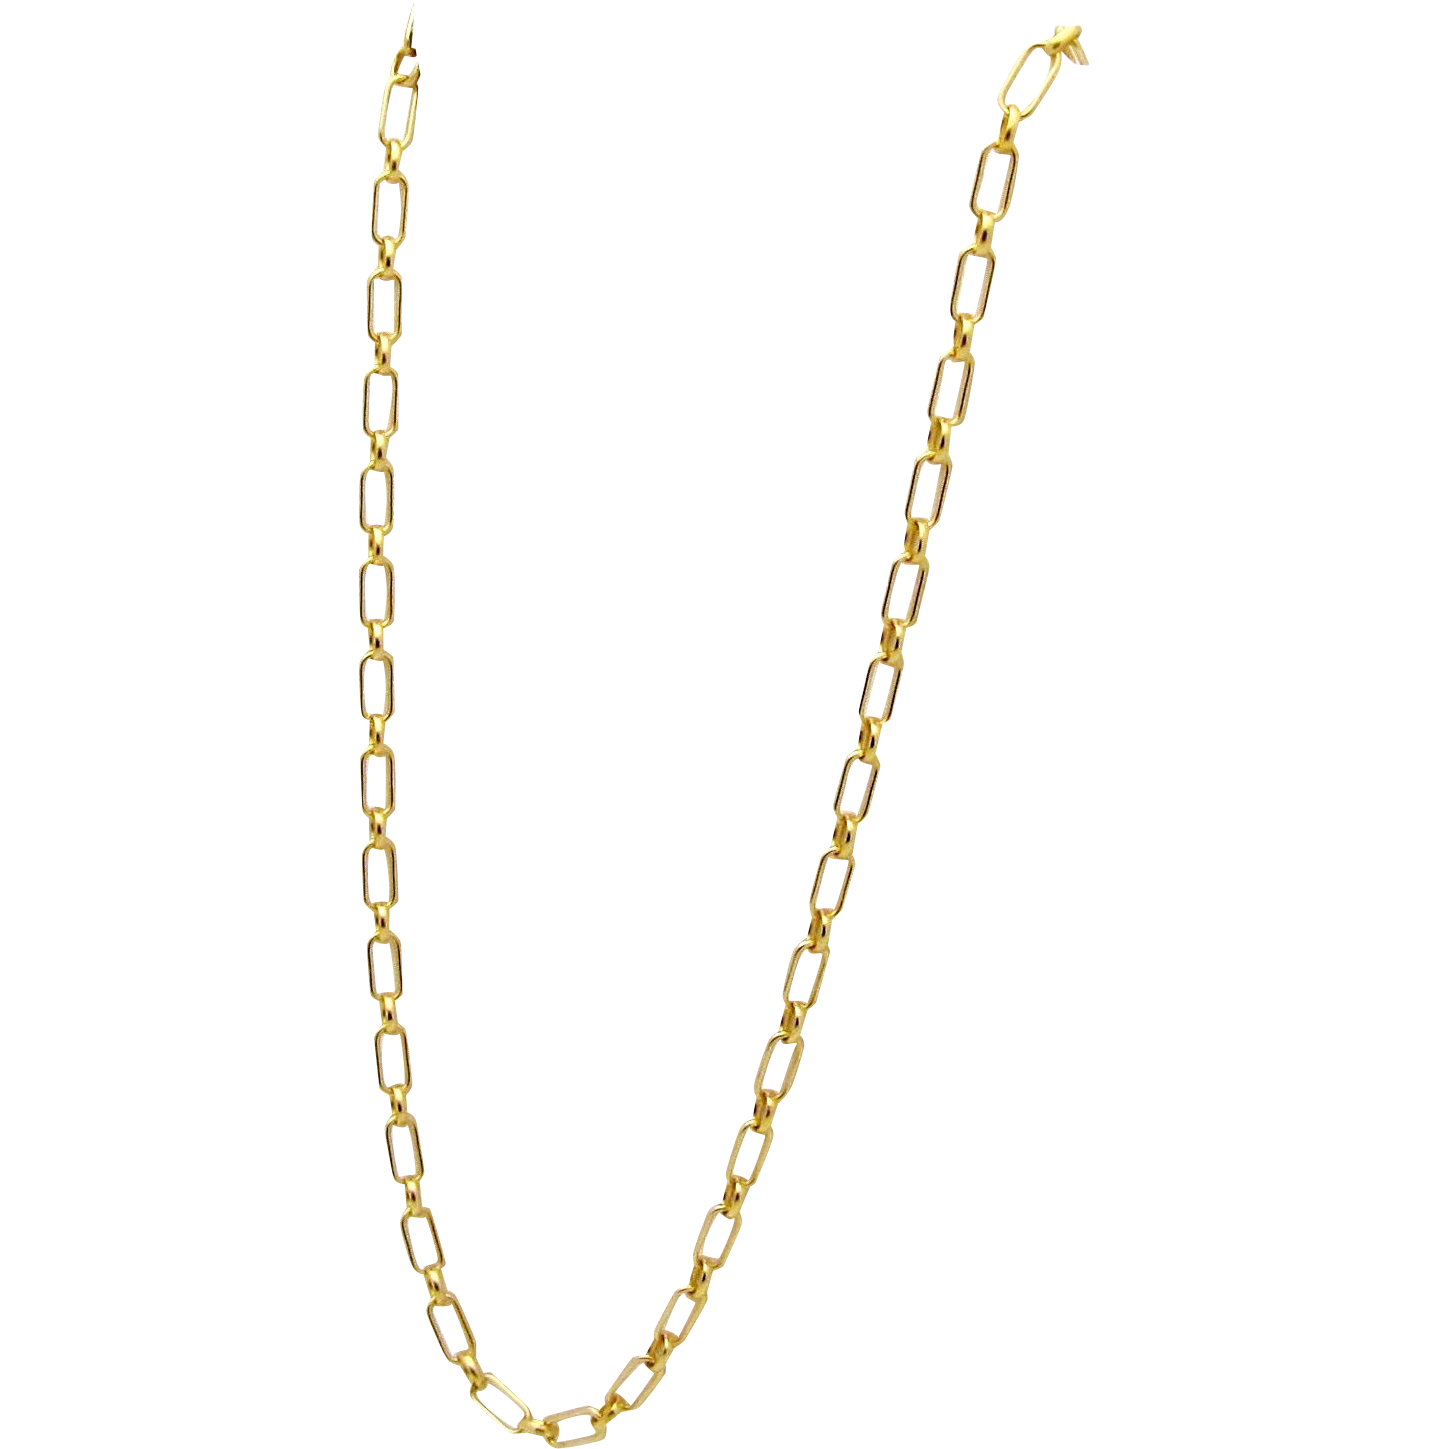 ch necklace necklaces link chain yellow white gold co photo men htm larger oval briggs heavy s j p